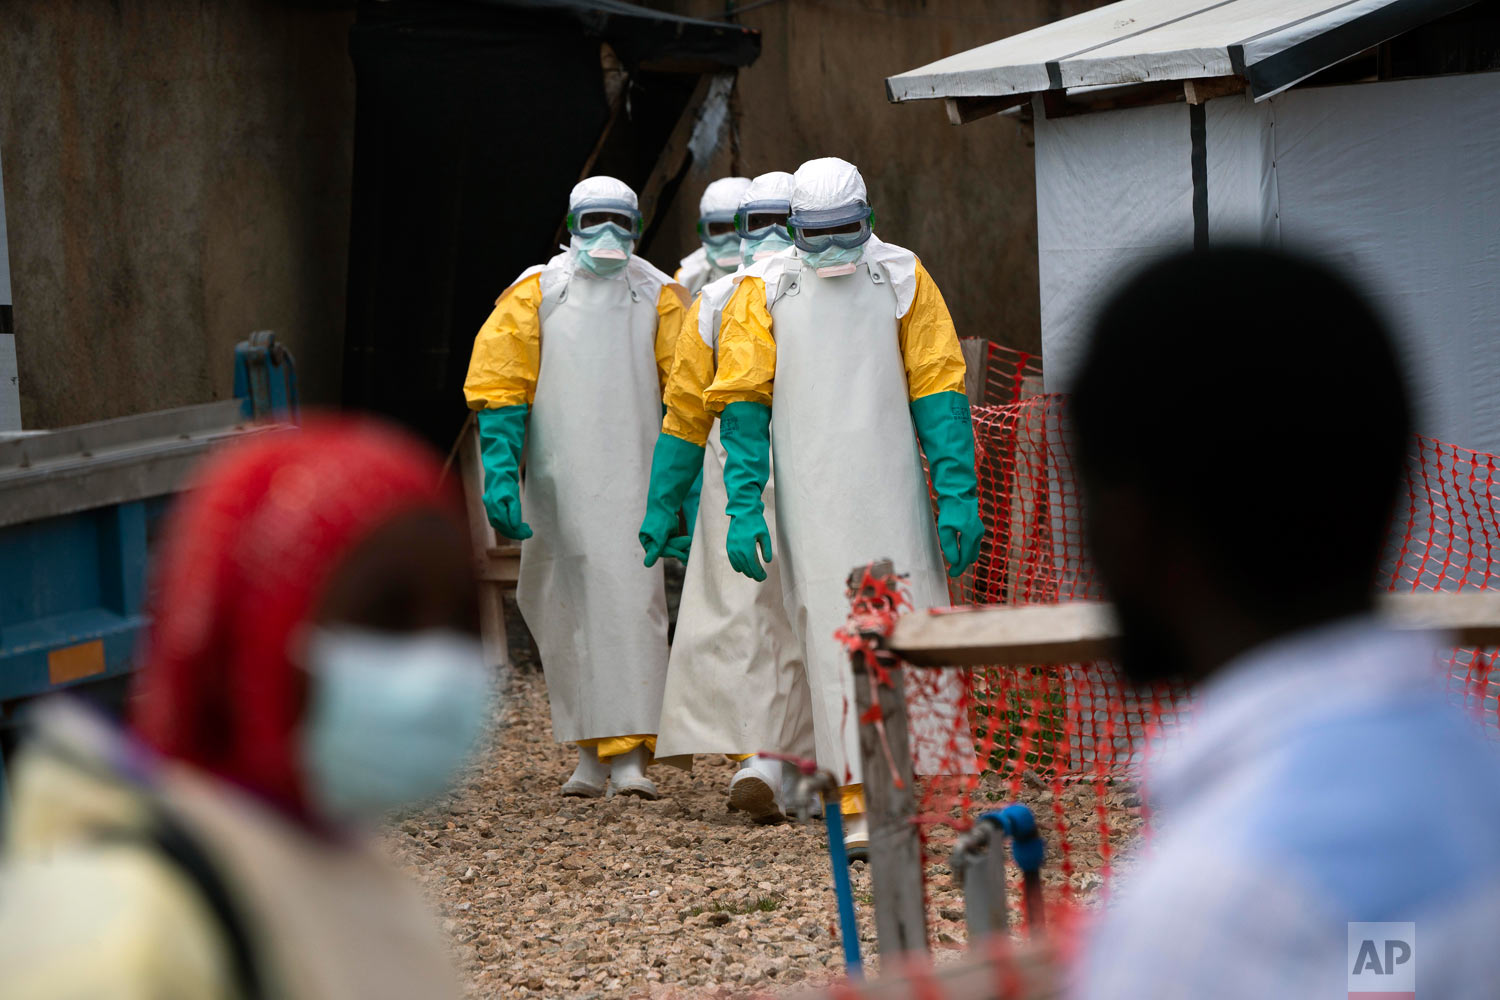 Health workers dressed in protective gear begin their shift at an Ebola treatment center in Beni, Congo, July 16, 2019. (AP Photo/Jerome Delay)